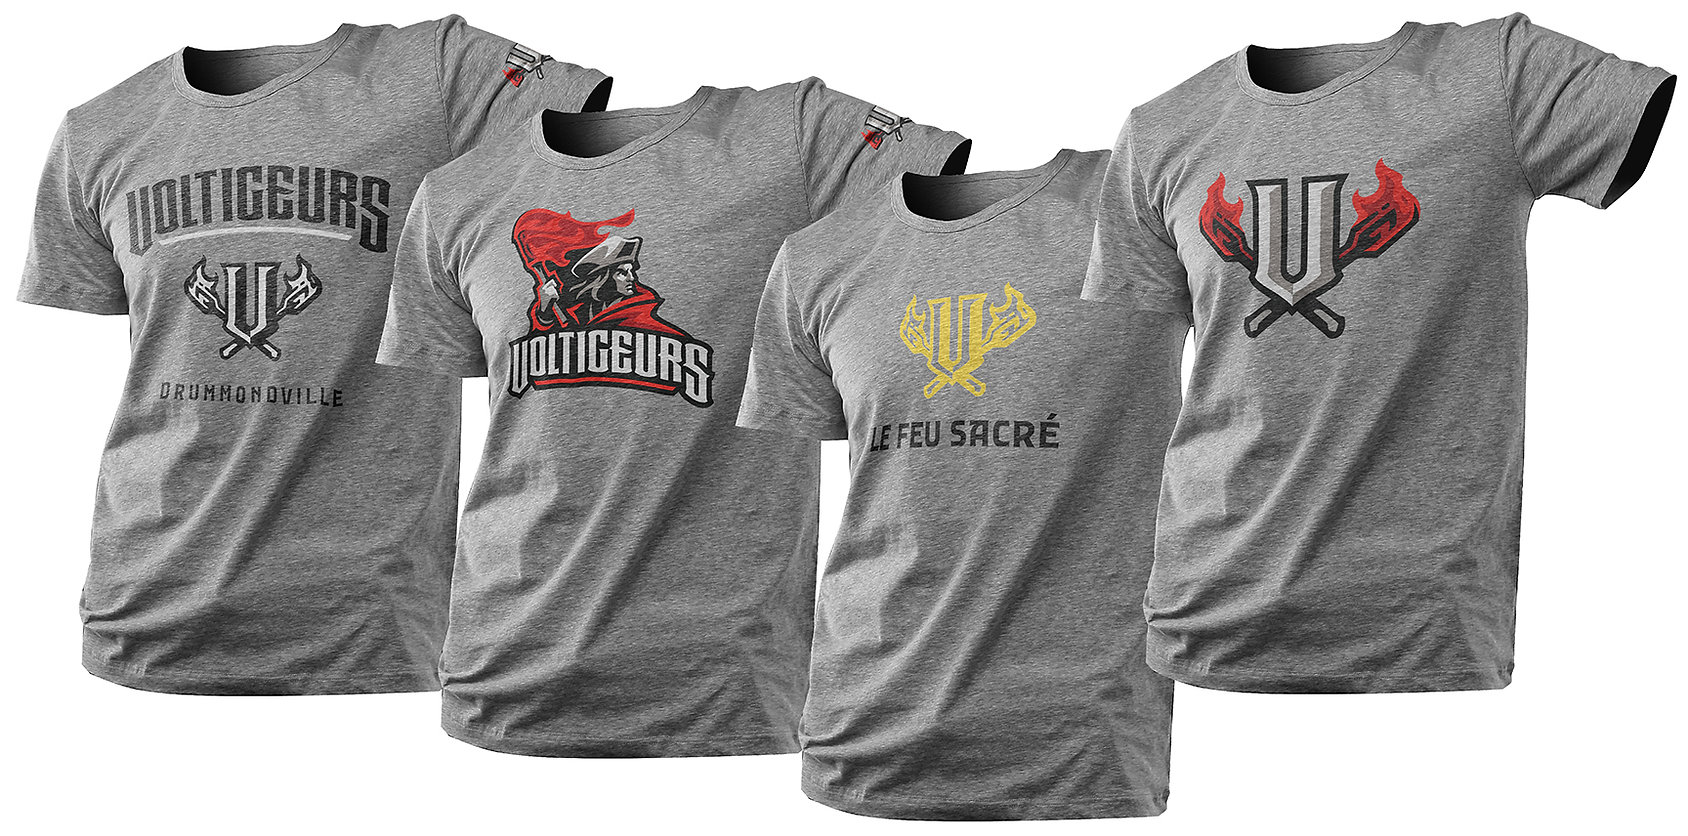 ©Andre_Roberge_Voltigeurs_t-shirt_colle